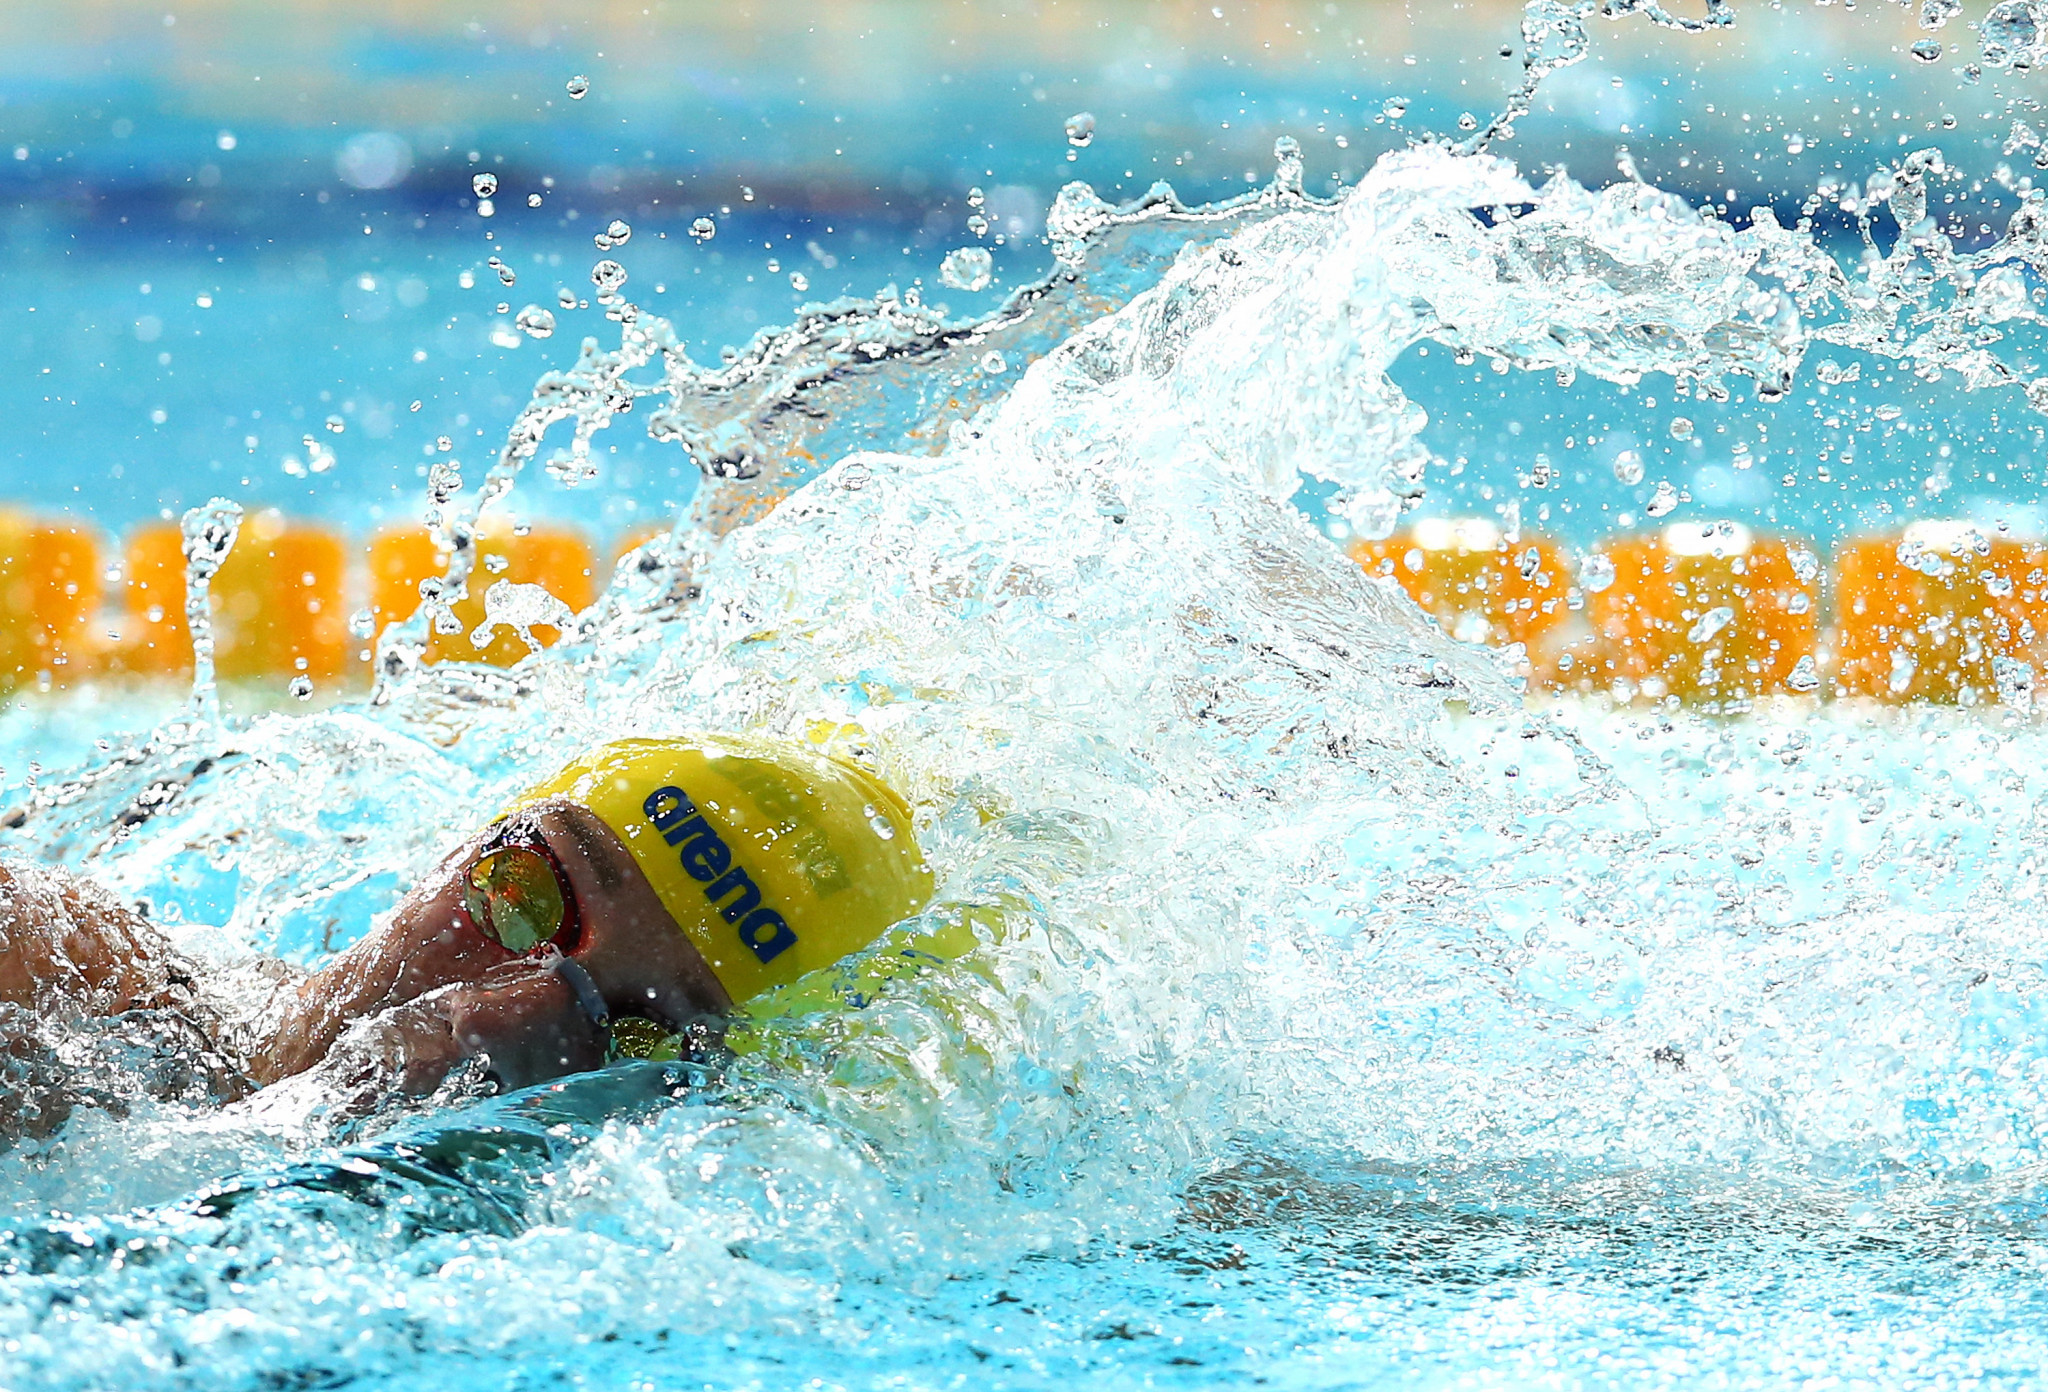 Sweden's Sarah Sjöström powered to victory in the women's 100m freestyle final ©Getty Images